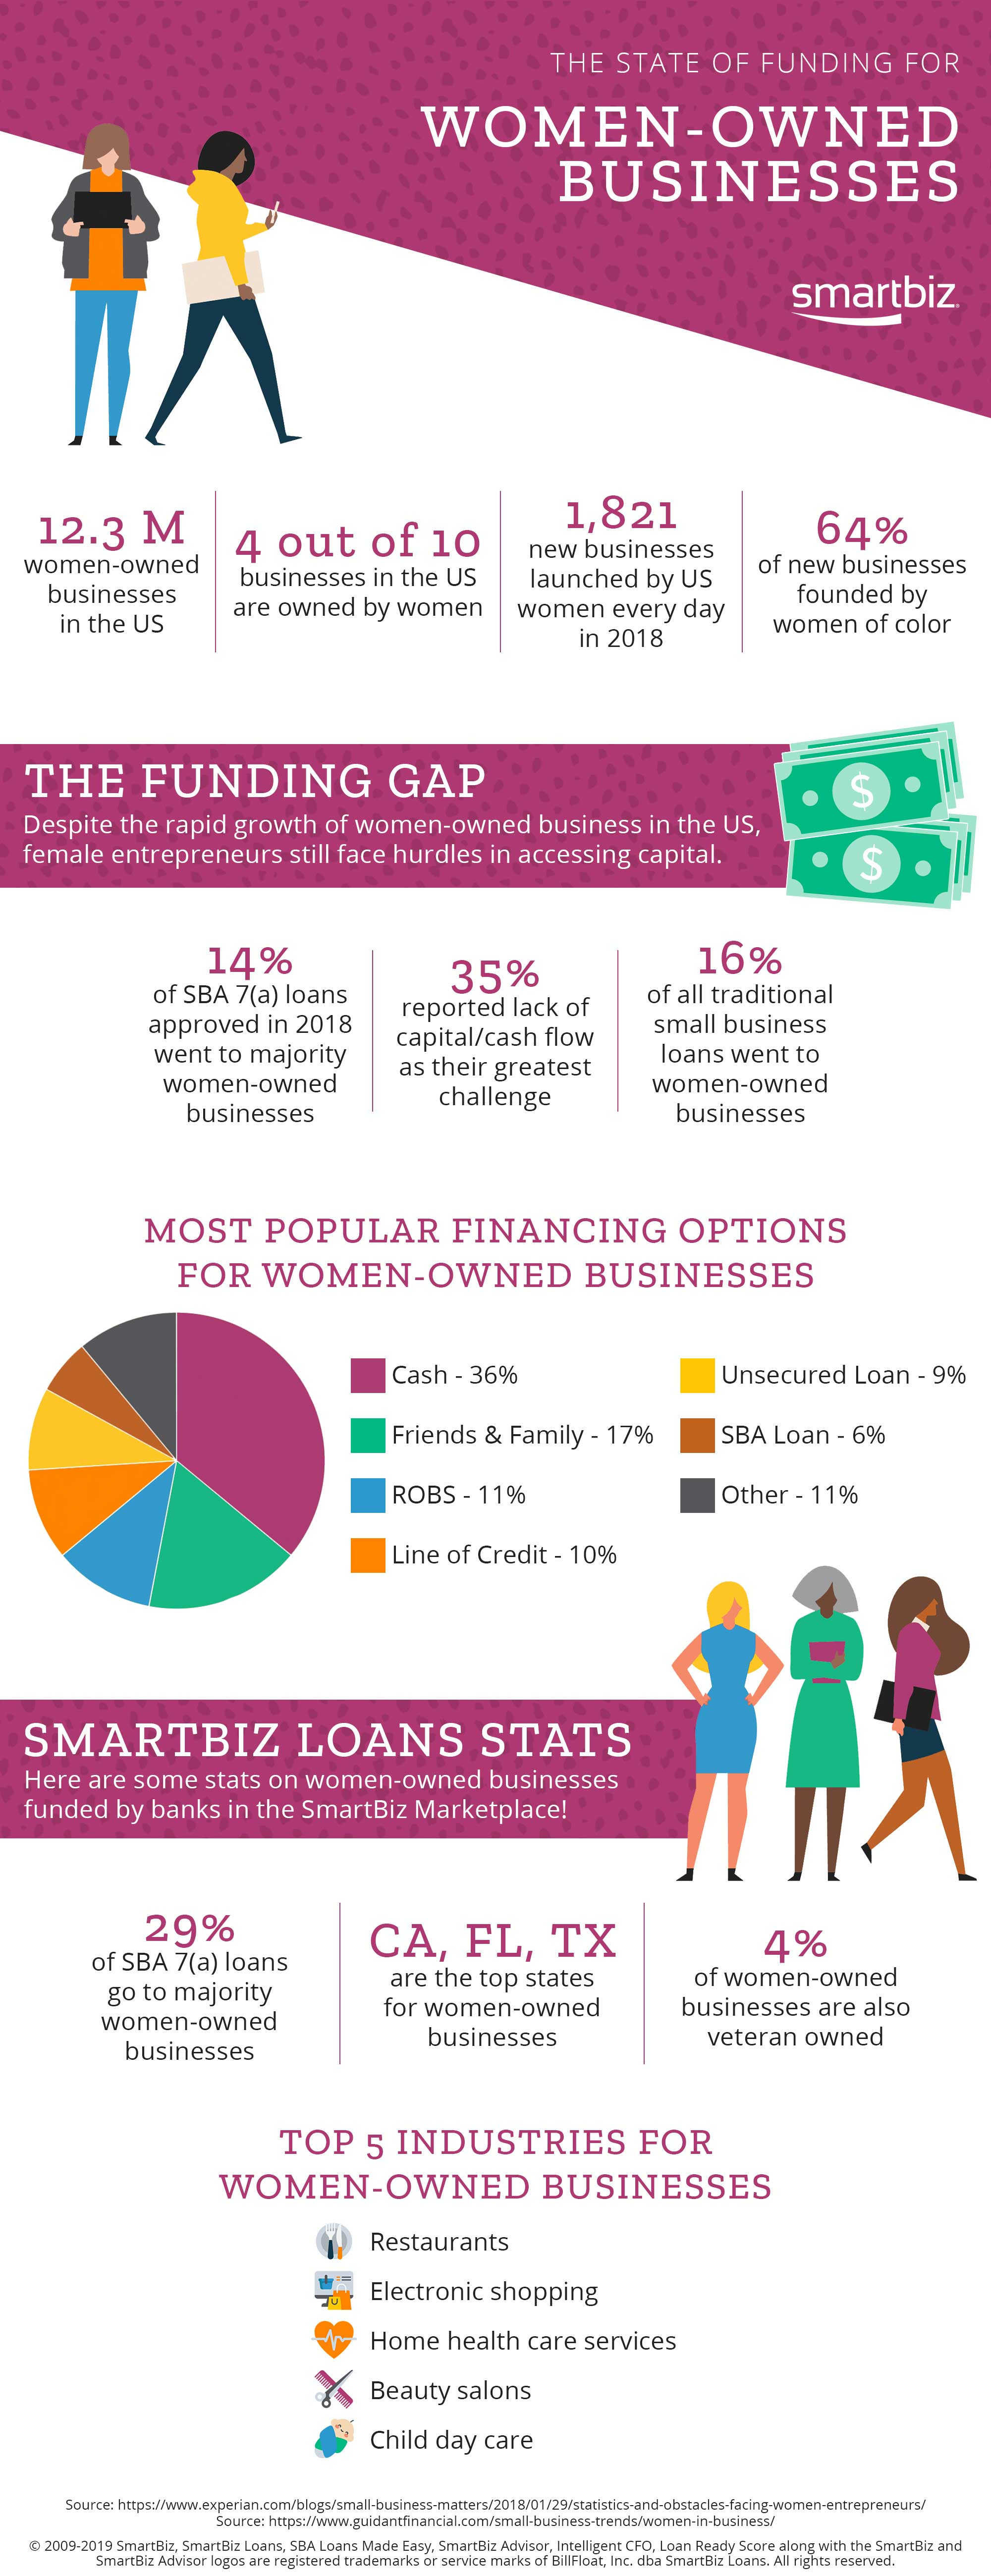 //resources.smartbizloans.com/wp-content/uploads/wbm-infographic-final.jpg